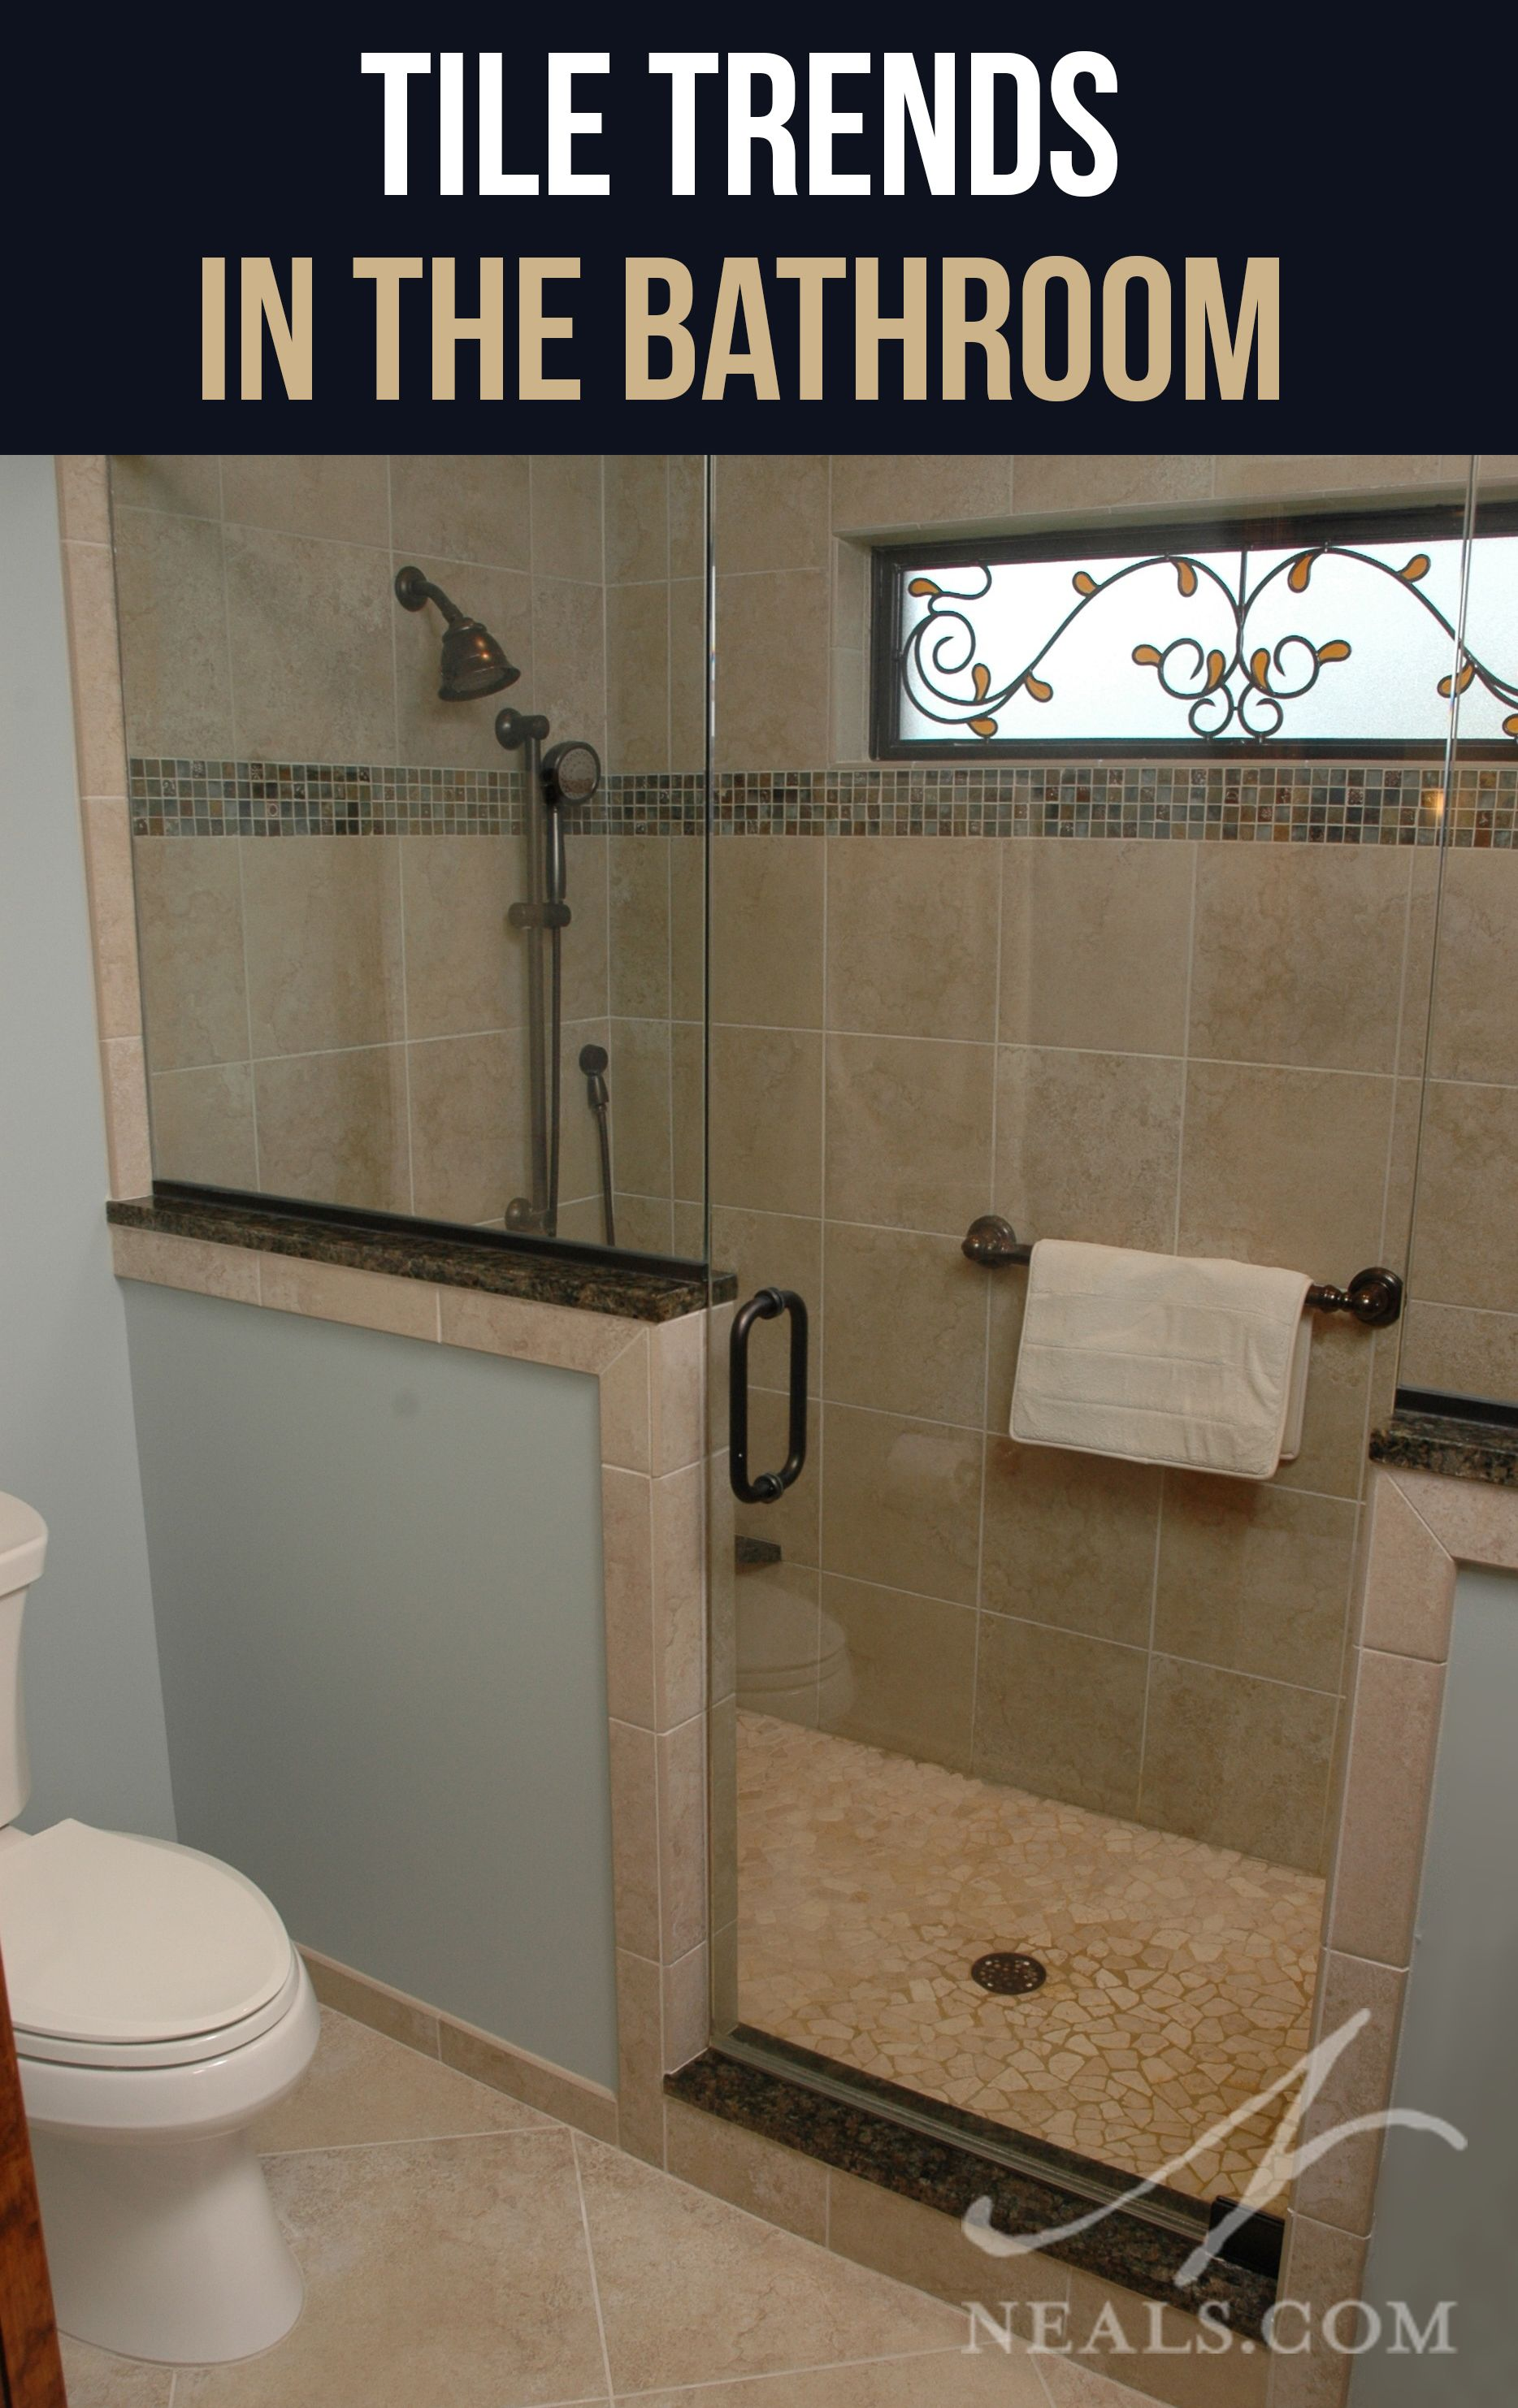 Bathroom Design Trends Tile Trends In The Bathroom  Bathroom Tiling Design Trends And